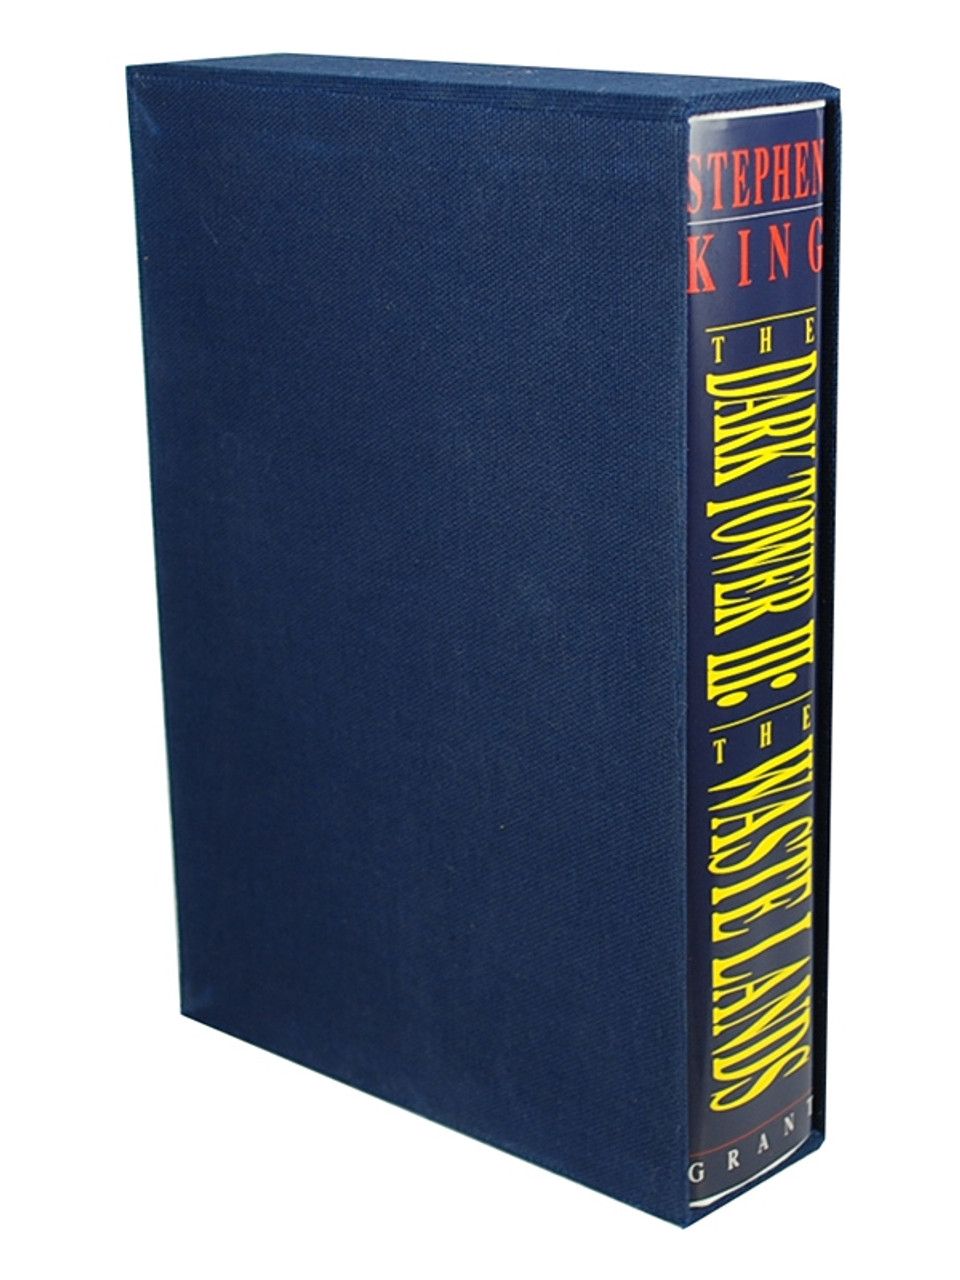 """Stephen King """"The Dark Tower 3 The Waste Lands """" Signed Limited Edition Slipcased #879 of 1,250"""